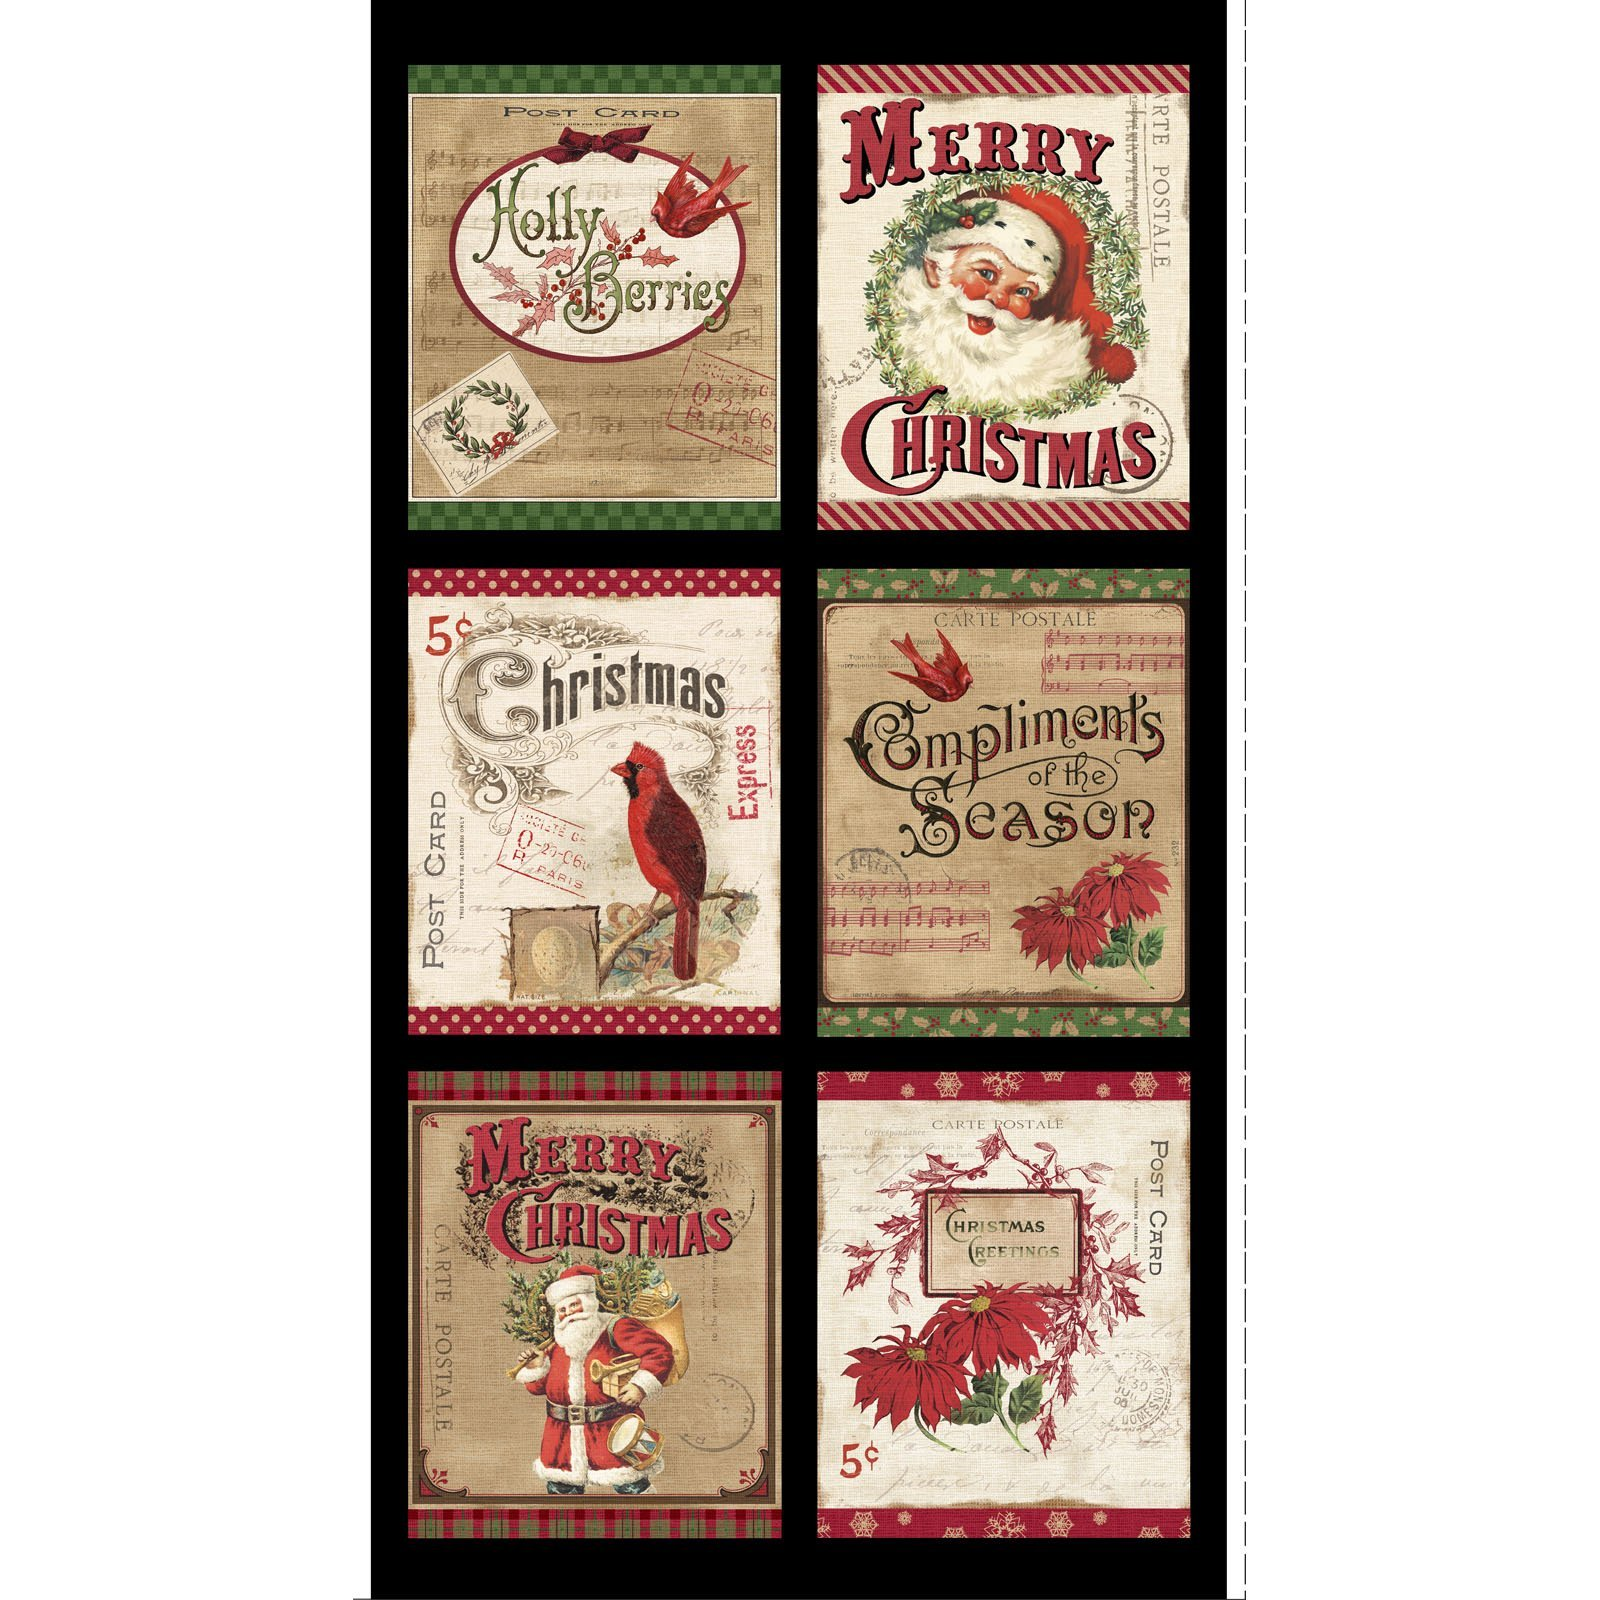 POHO-4439 PA - POSTCARD HOLIDAY BY PELLA STUDIO HOLIDAY PANEL 10YDS(15PNLS) MULTI - ARRIVING IN JULY 2021